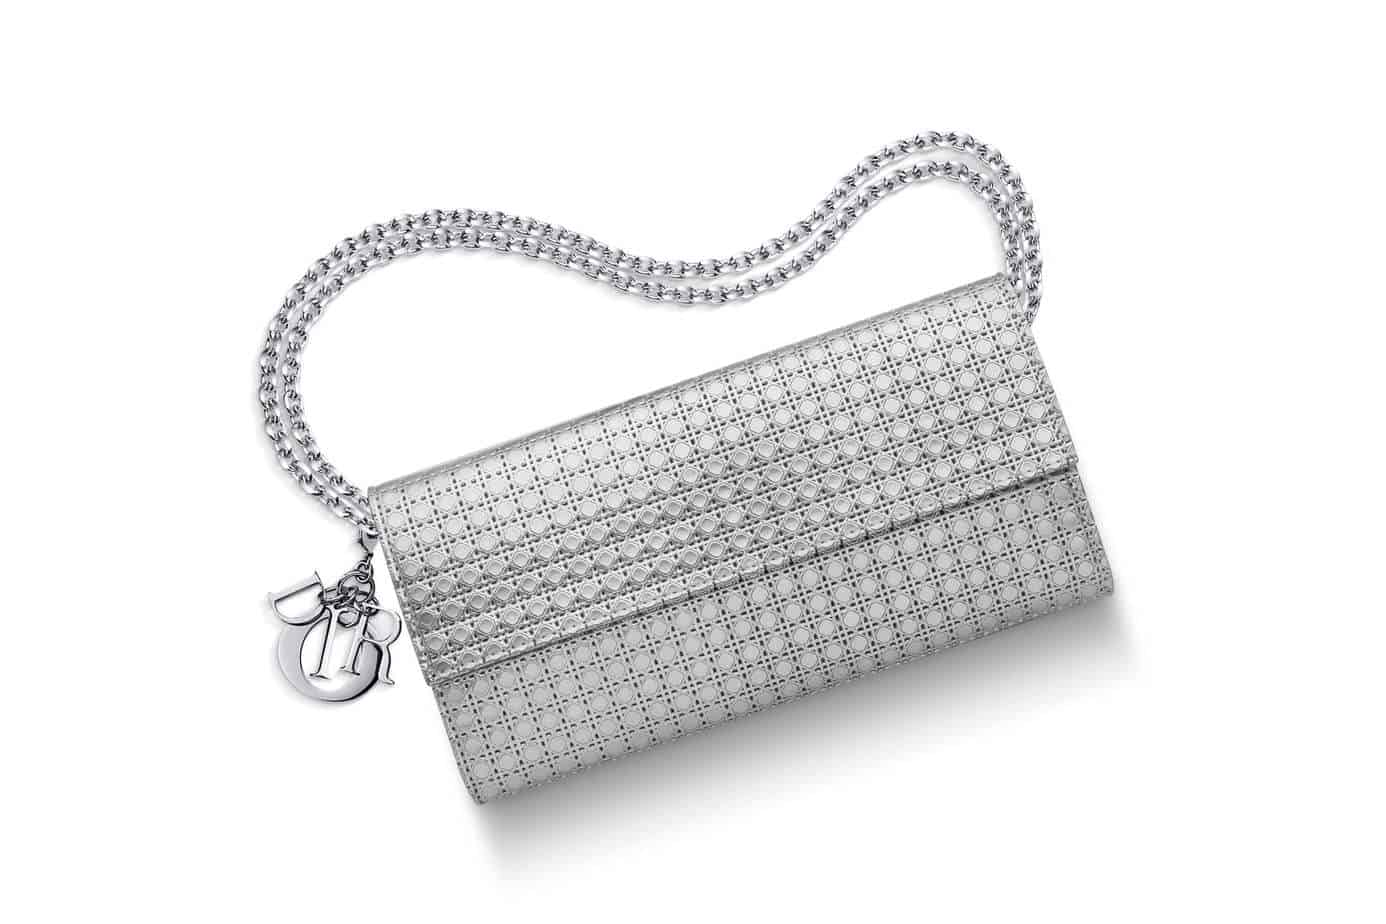 859ff2f3d7 Lady Dior CroisiÈre Wallet Silver Tone Perforated Calfskin Posh. Dior Lady  Croisiere Wallet Copper Gold Micro Cannage Metallic Calfskin